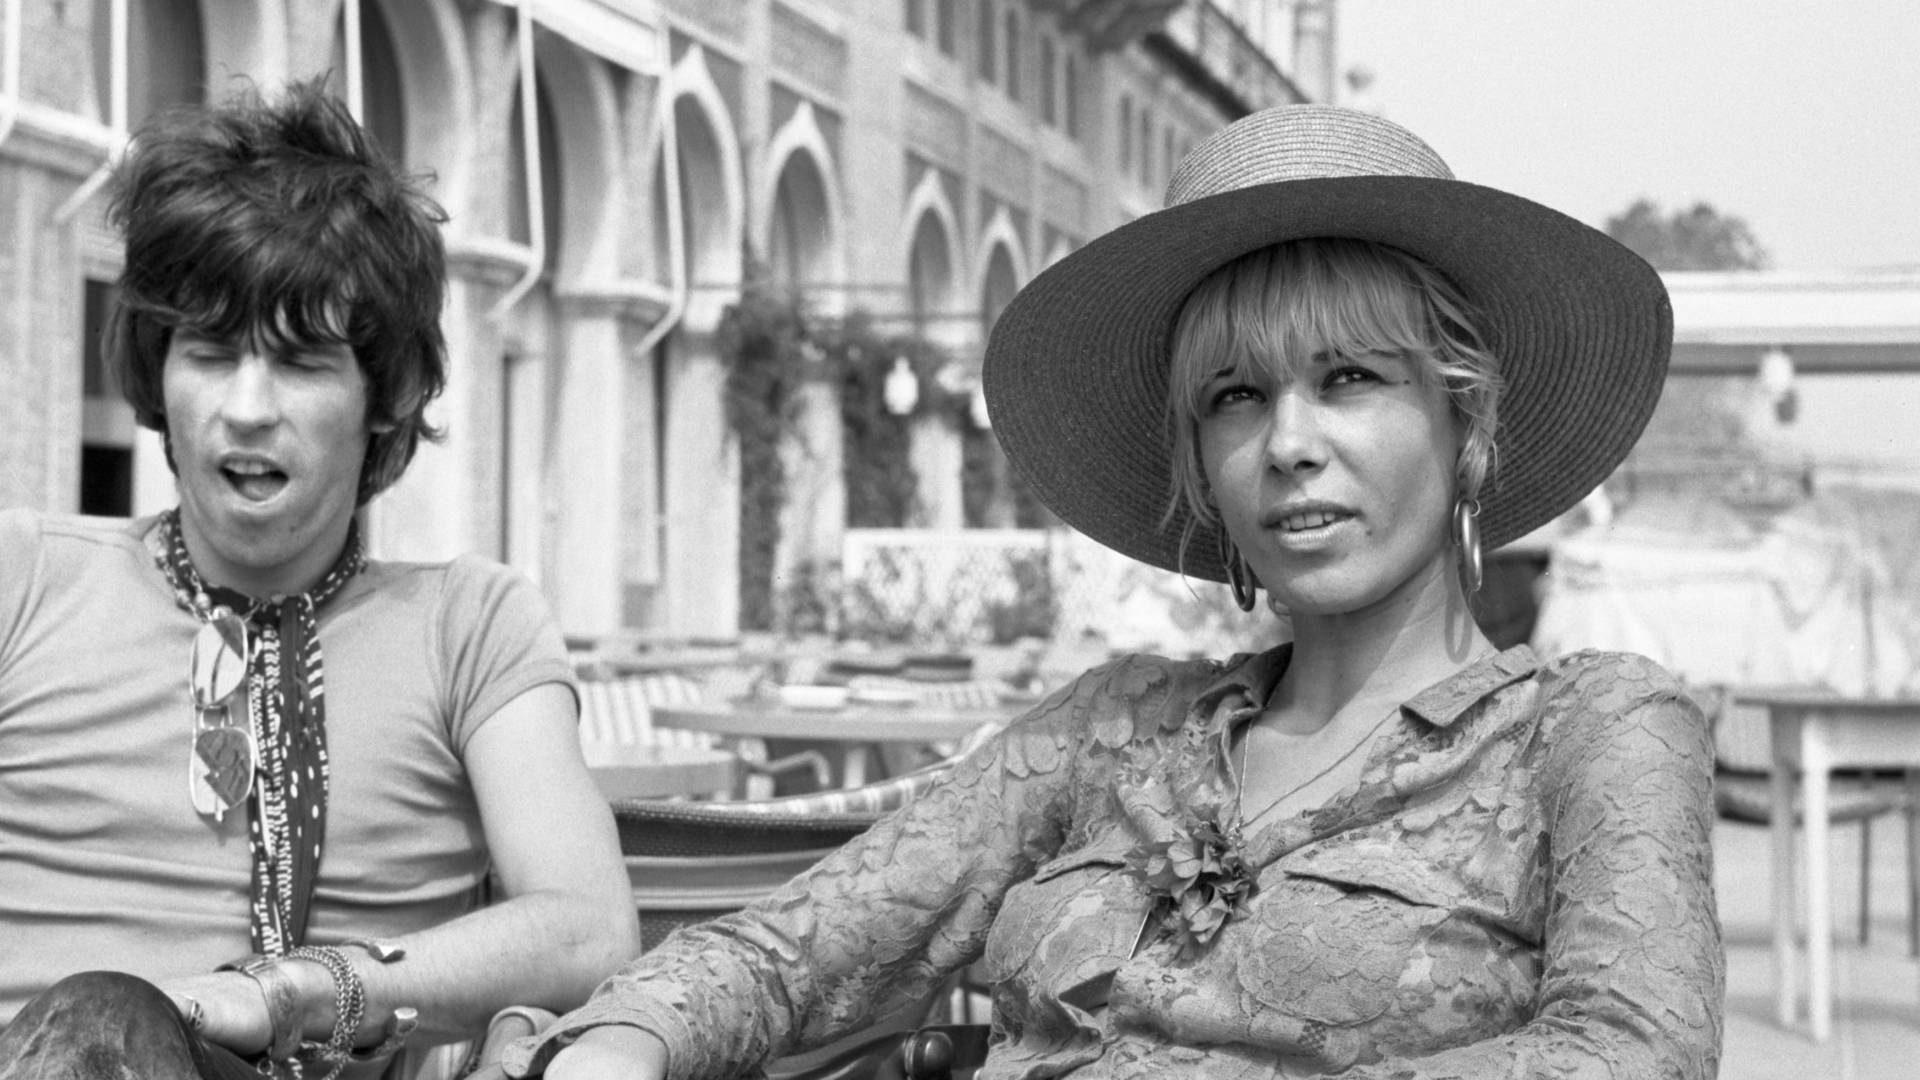 Anita Pallenberg, sitting outside the Excelsior Hotel in Venice alongside Keith Richards in1967